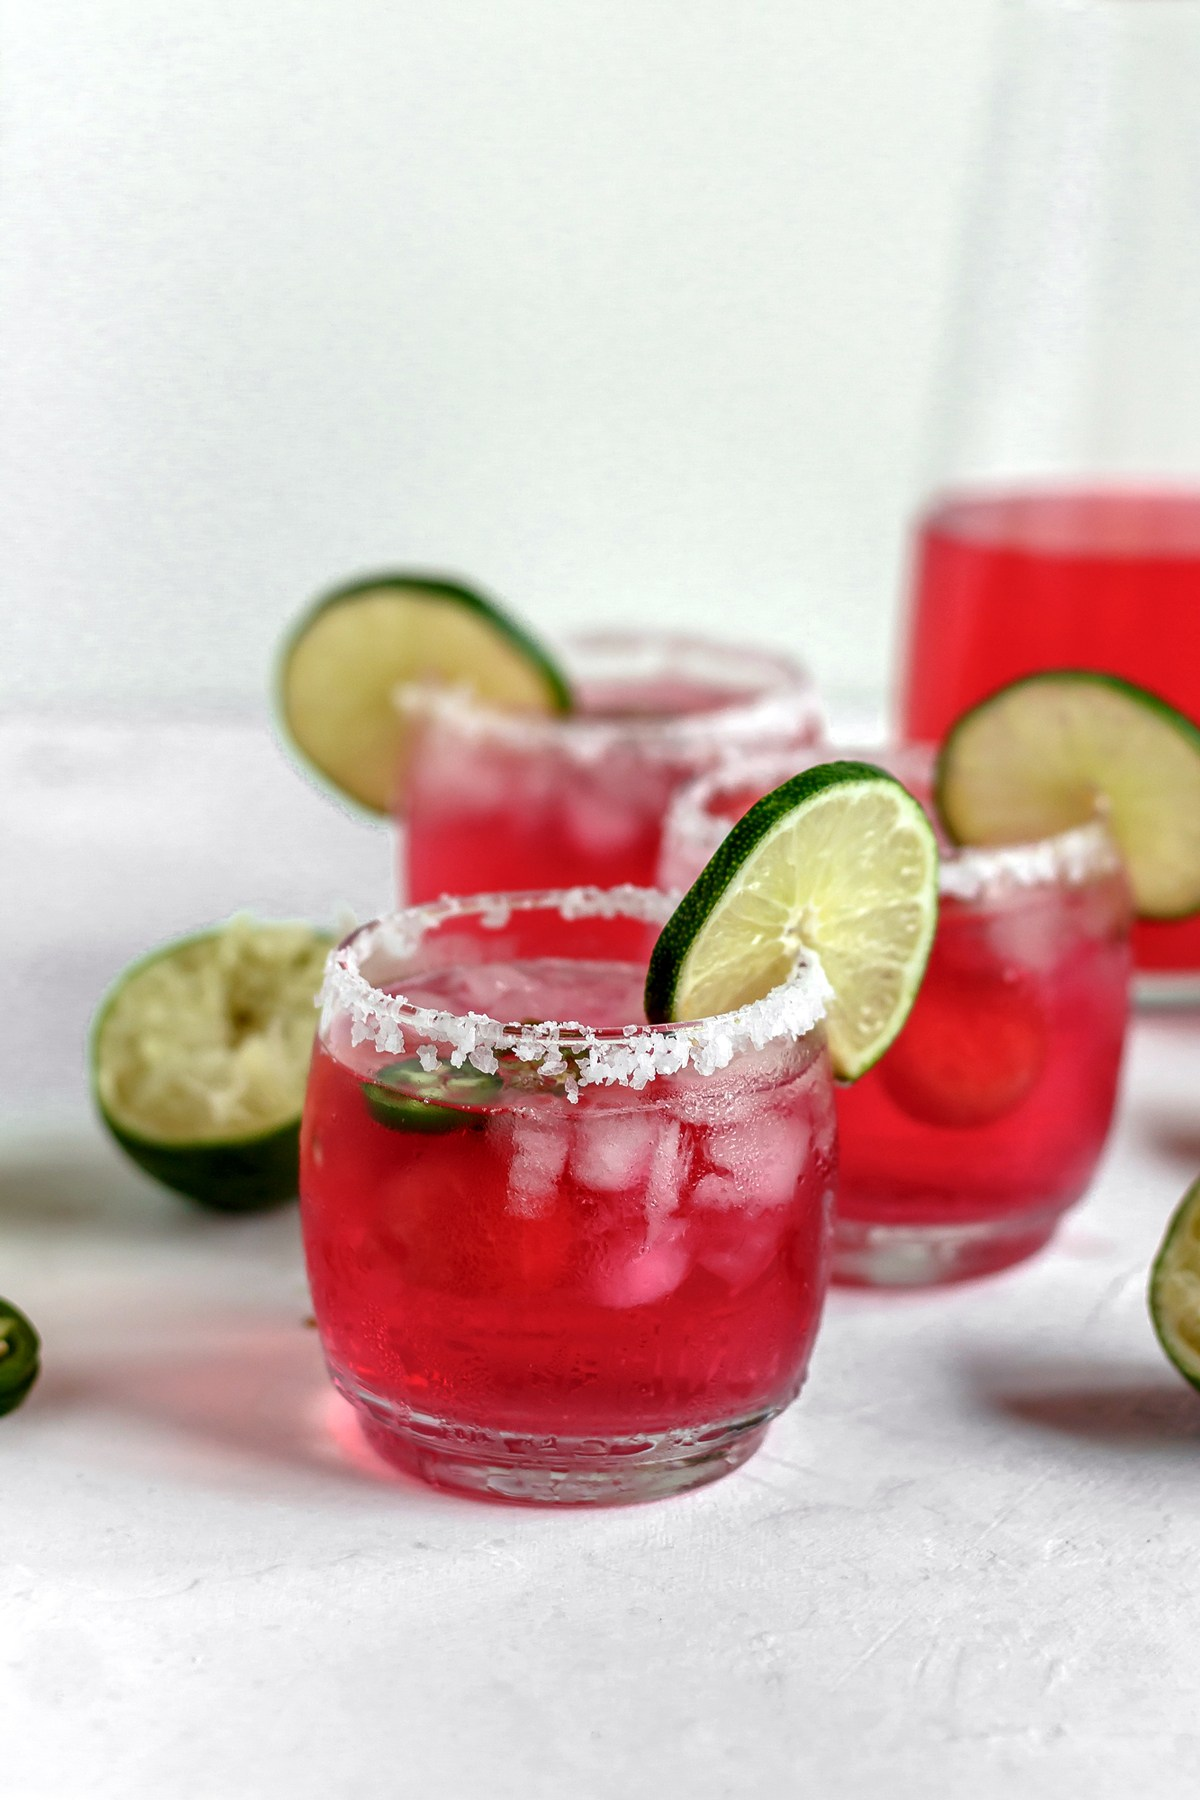 @bakedambrosia's cover photo for 'Skinny Jalapeño Watermelon Margaritas - Baked Ambrosia'